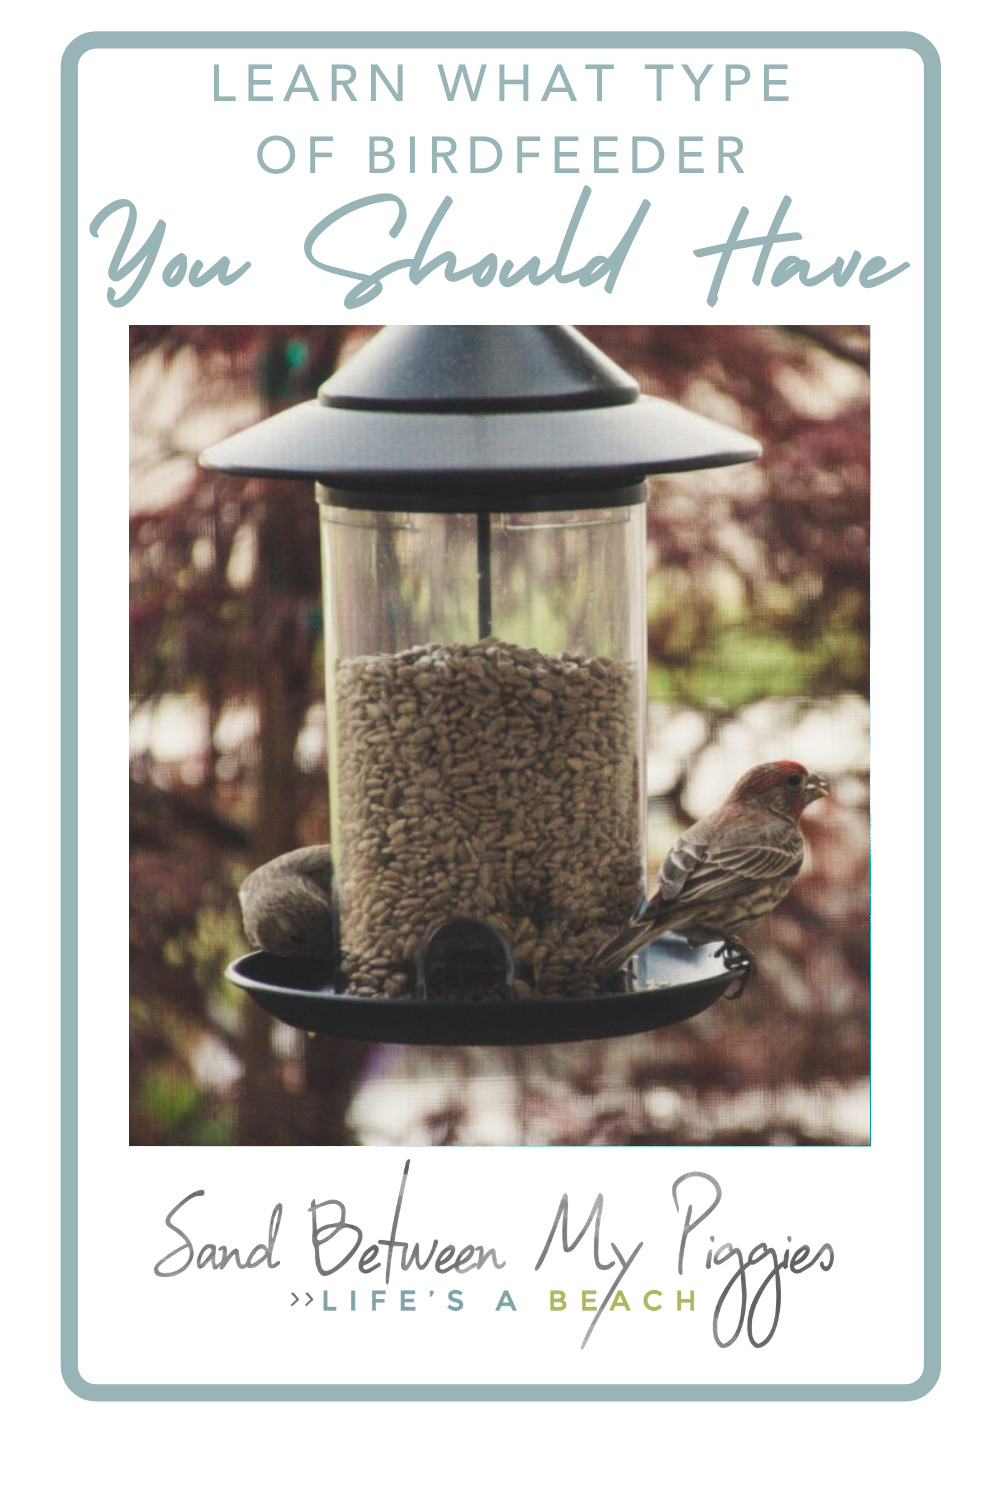 Sandbetweenmypiggies.com is loaded with cute, fun decor and leisure ideas! There are so many great reasons to have a bird feeder in your yard! Find out which style is the best fit for you!